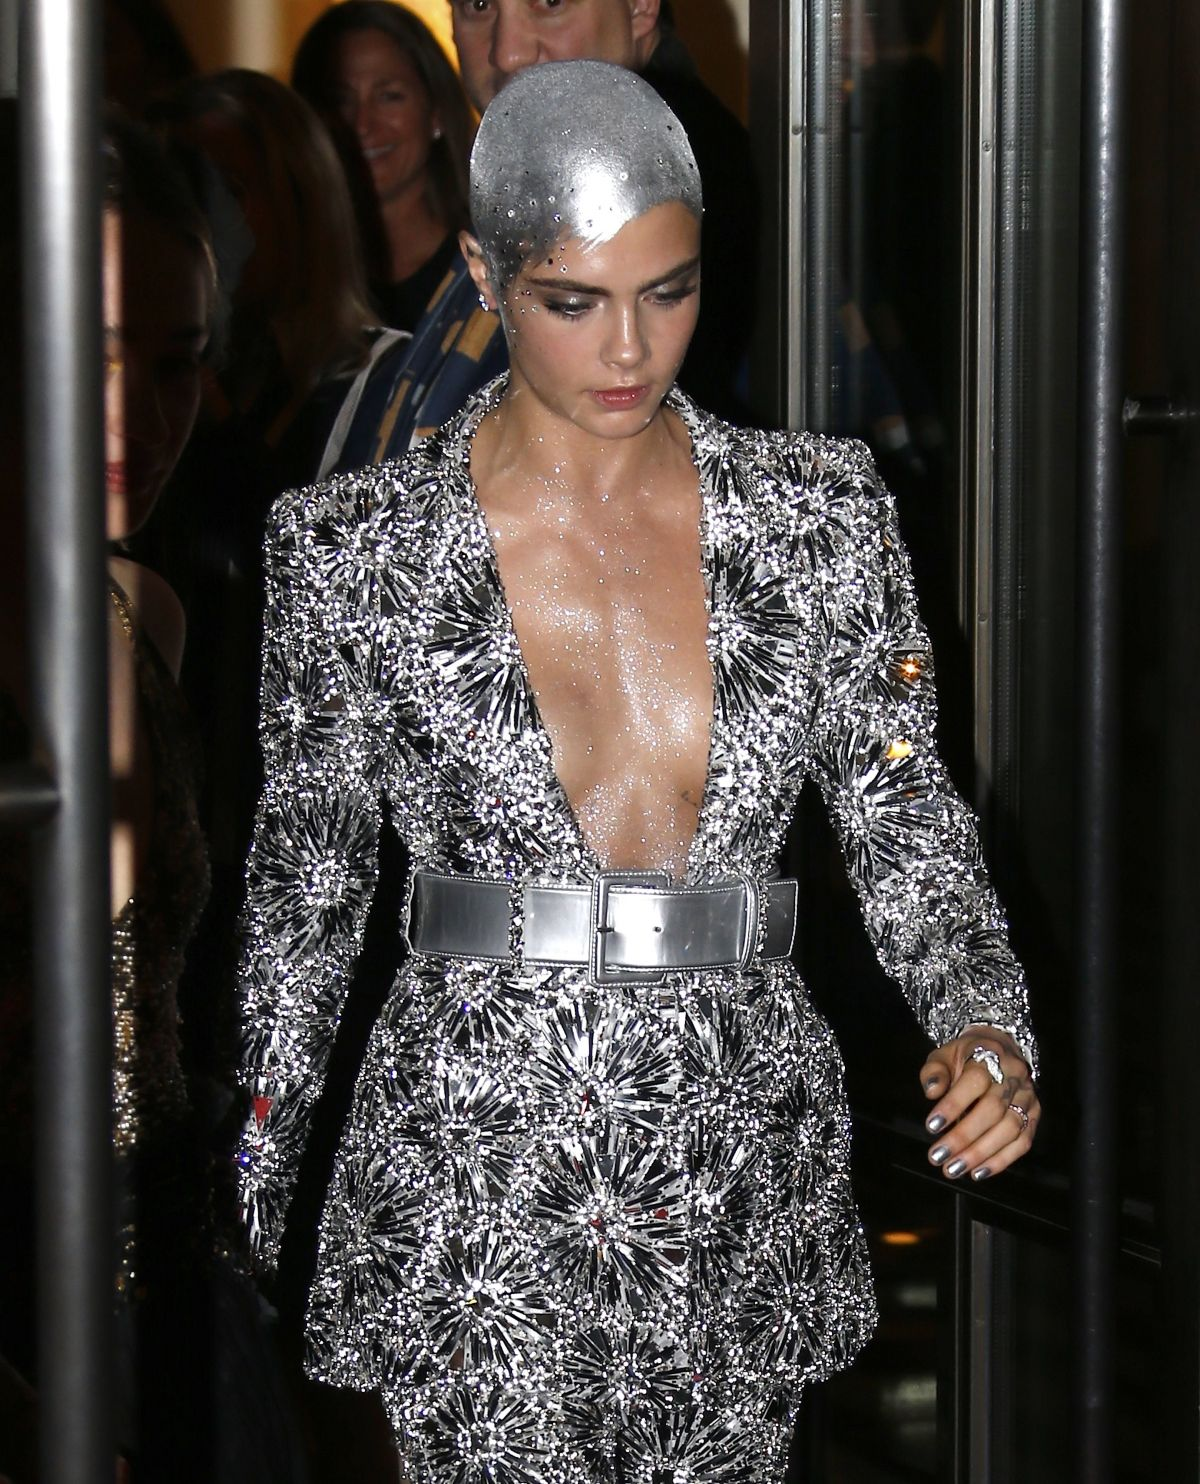 CARA DELEVINGNE on Her Way to MET Gala in New York 05/01/2017